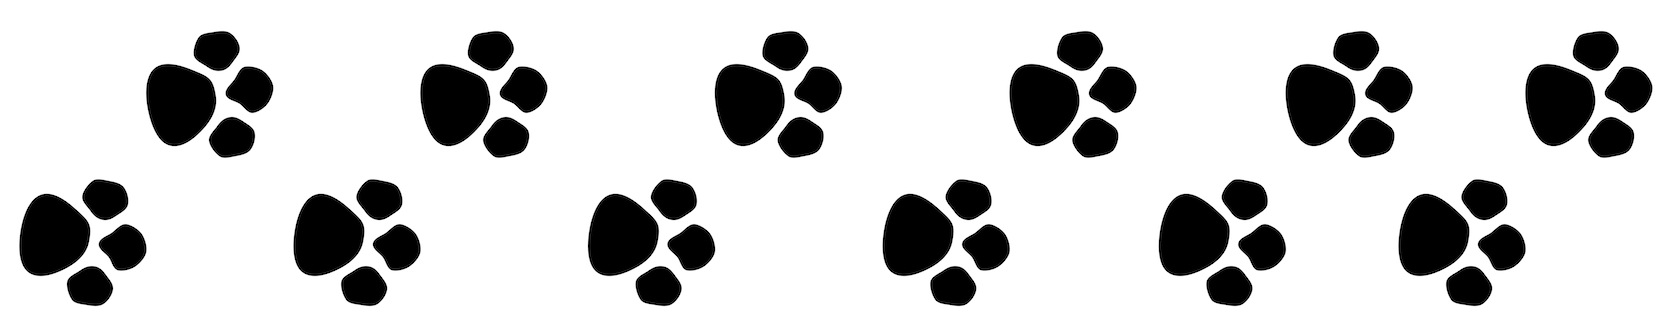 Pawprint clipart banner, Pawprint banner Transparent FREE for download on WebStockReview 2020